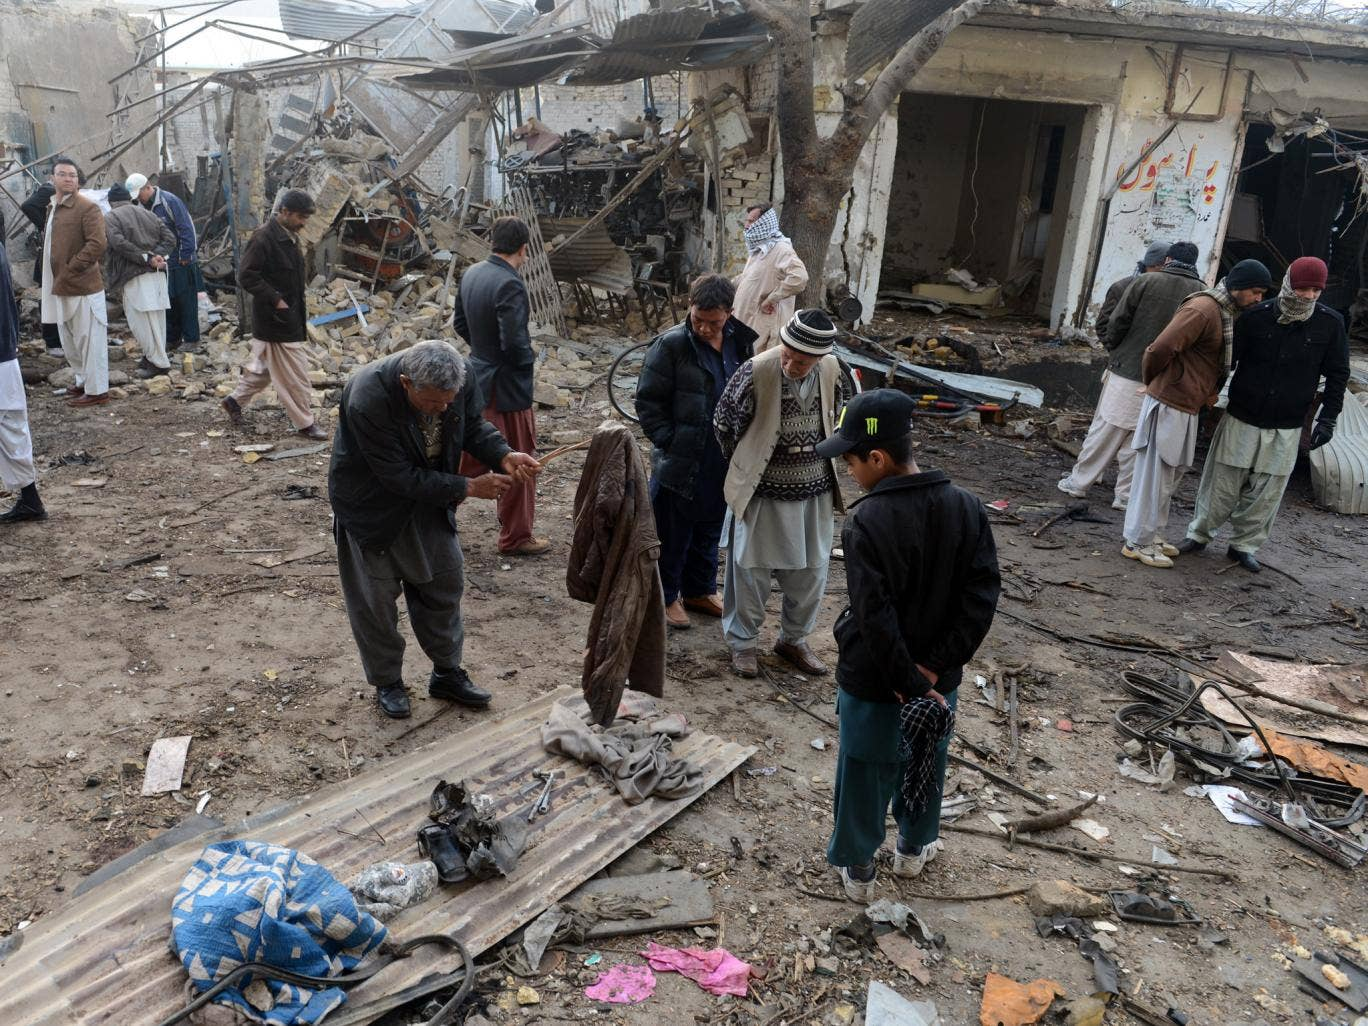 Residents gather at the site of bombings in Quetta